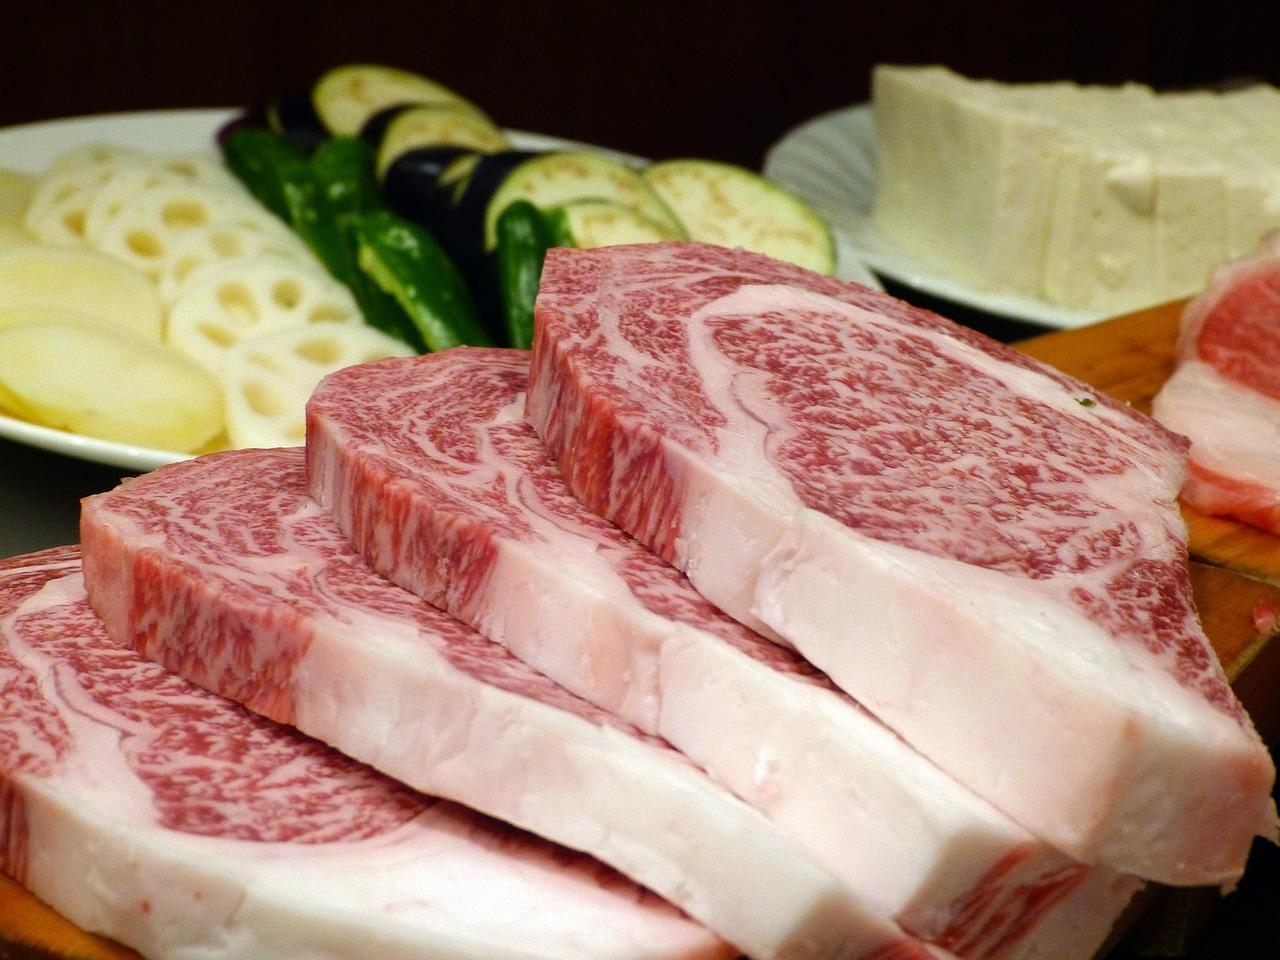 Difference between Kobe and Wagyu